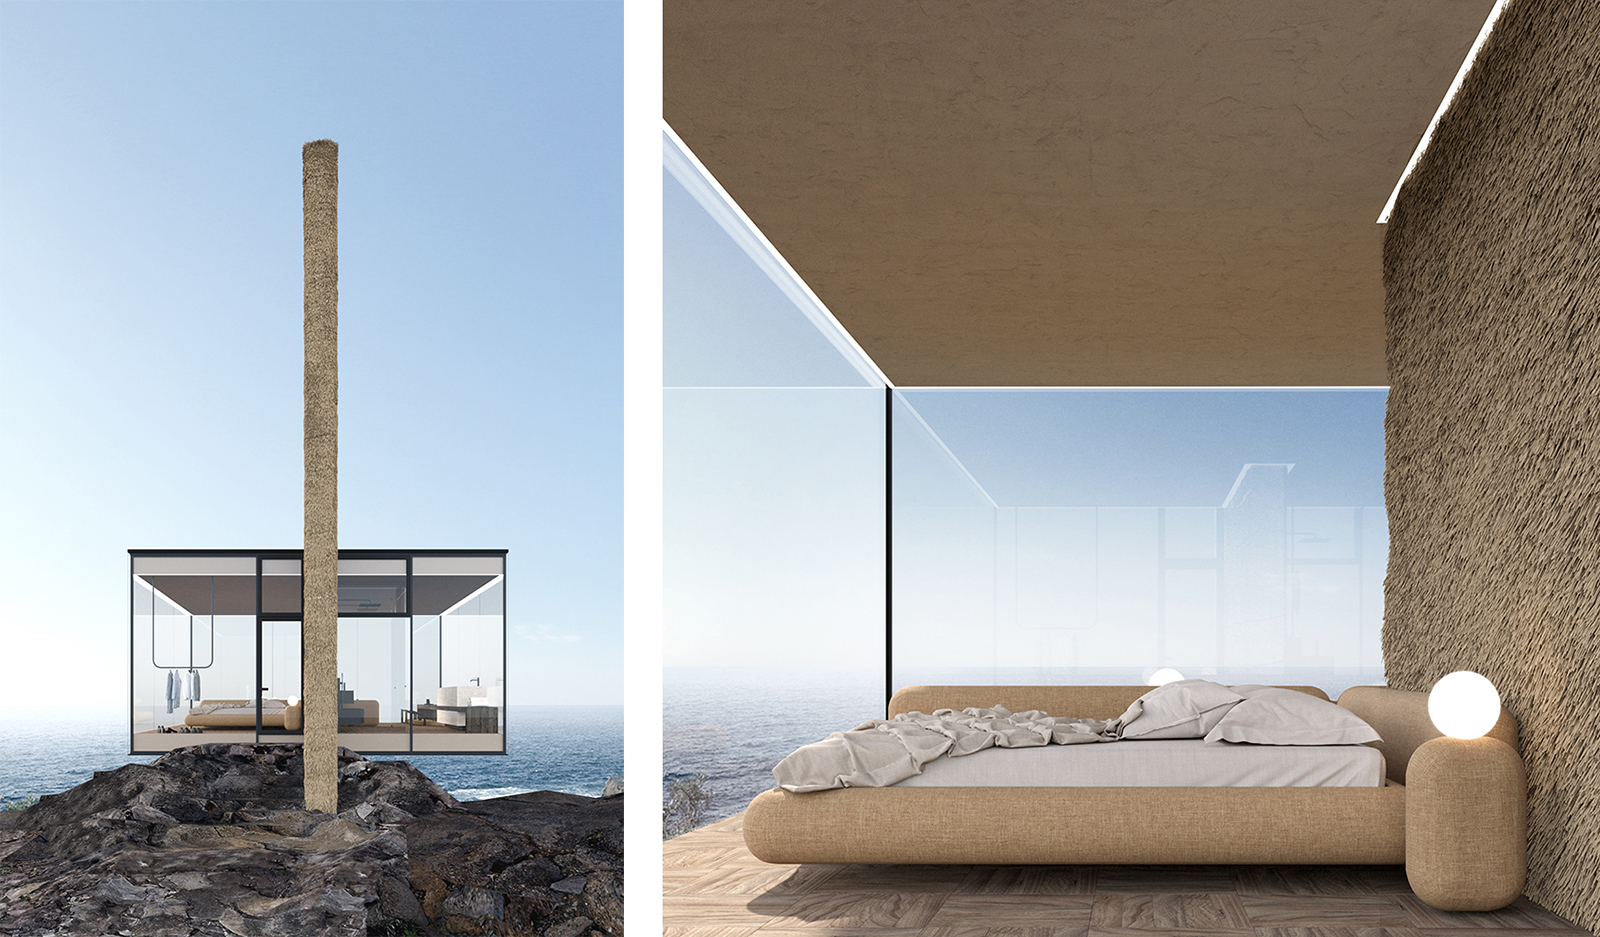 The Air Cabin was designed for a surfer, and features a glass volume anchored by a concrete pillar driven into the rocks Living spaces are purposefully minimal, making the most of the dramatic surrounds and the textures presented by building materials.